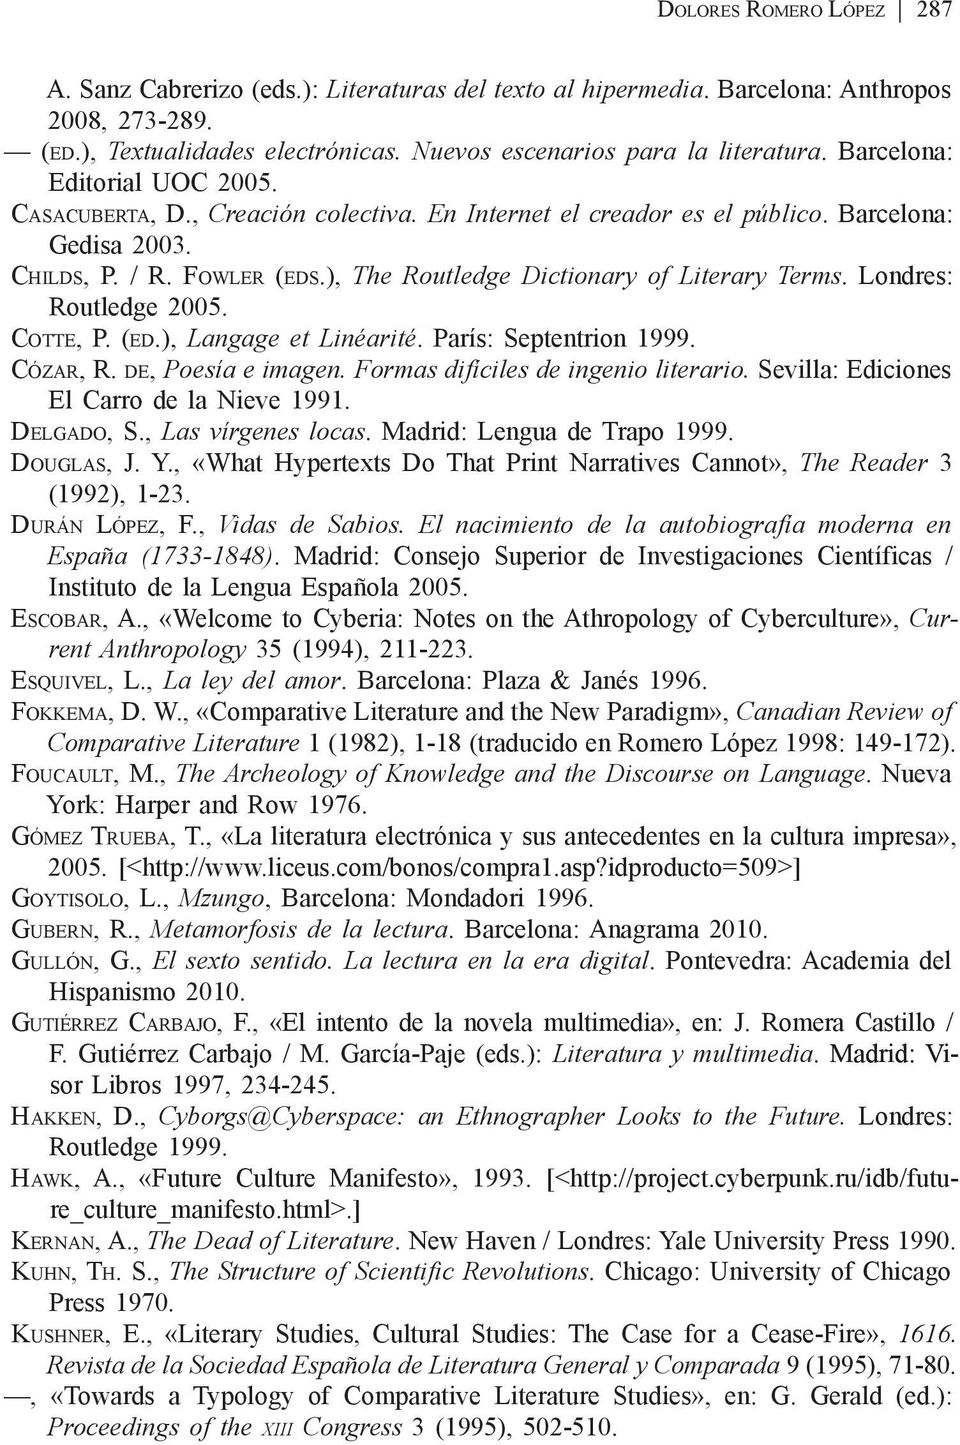 ), The Routledge Dictionary of Literary Terms. Londres: Routledge 2005. Cotte, P. (ed.), Langage et Linéarité. París: Septentrion 1999. Cózar, R. de, Poesía e imagen.